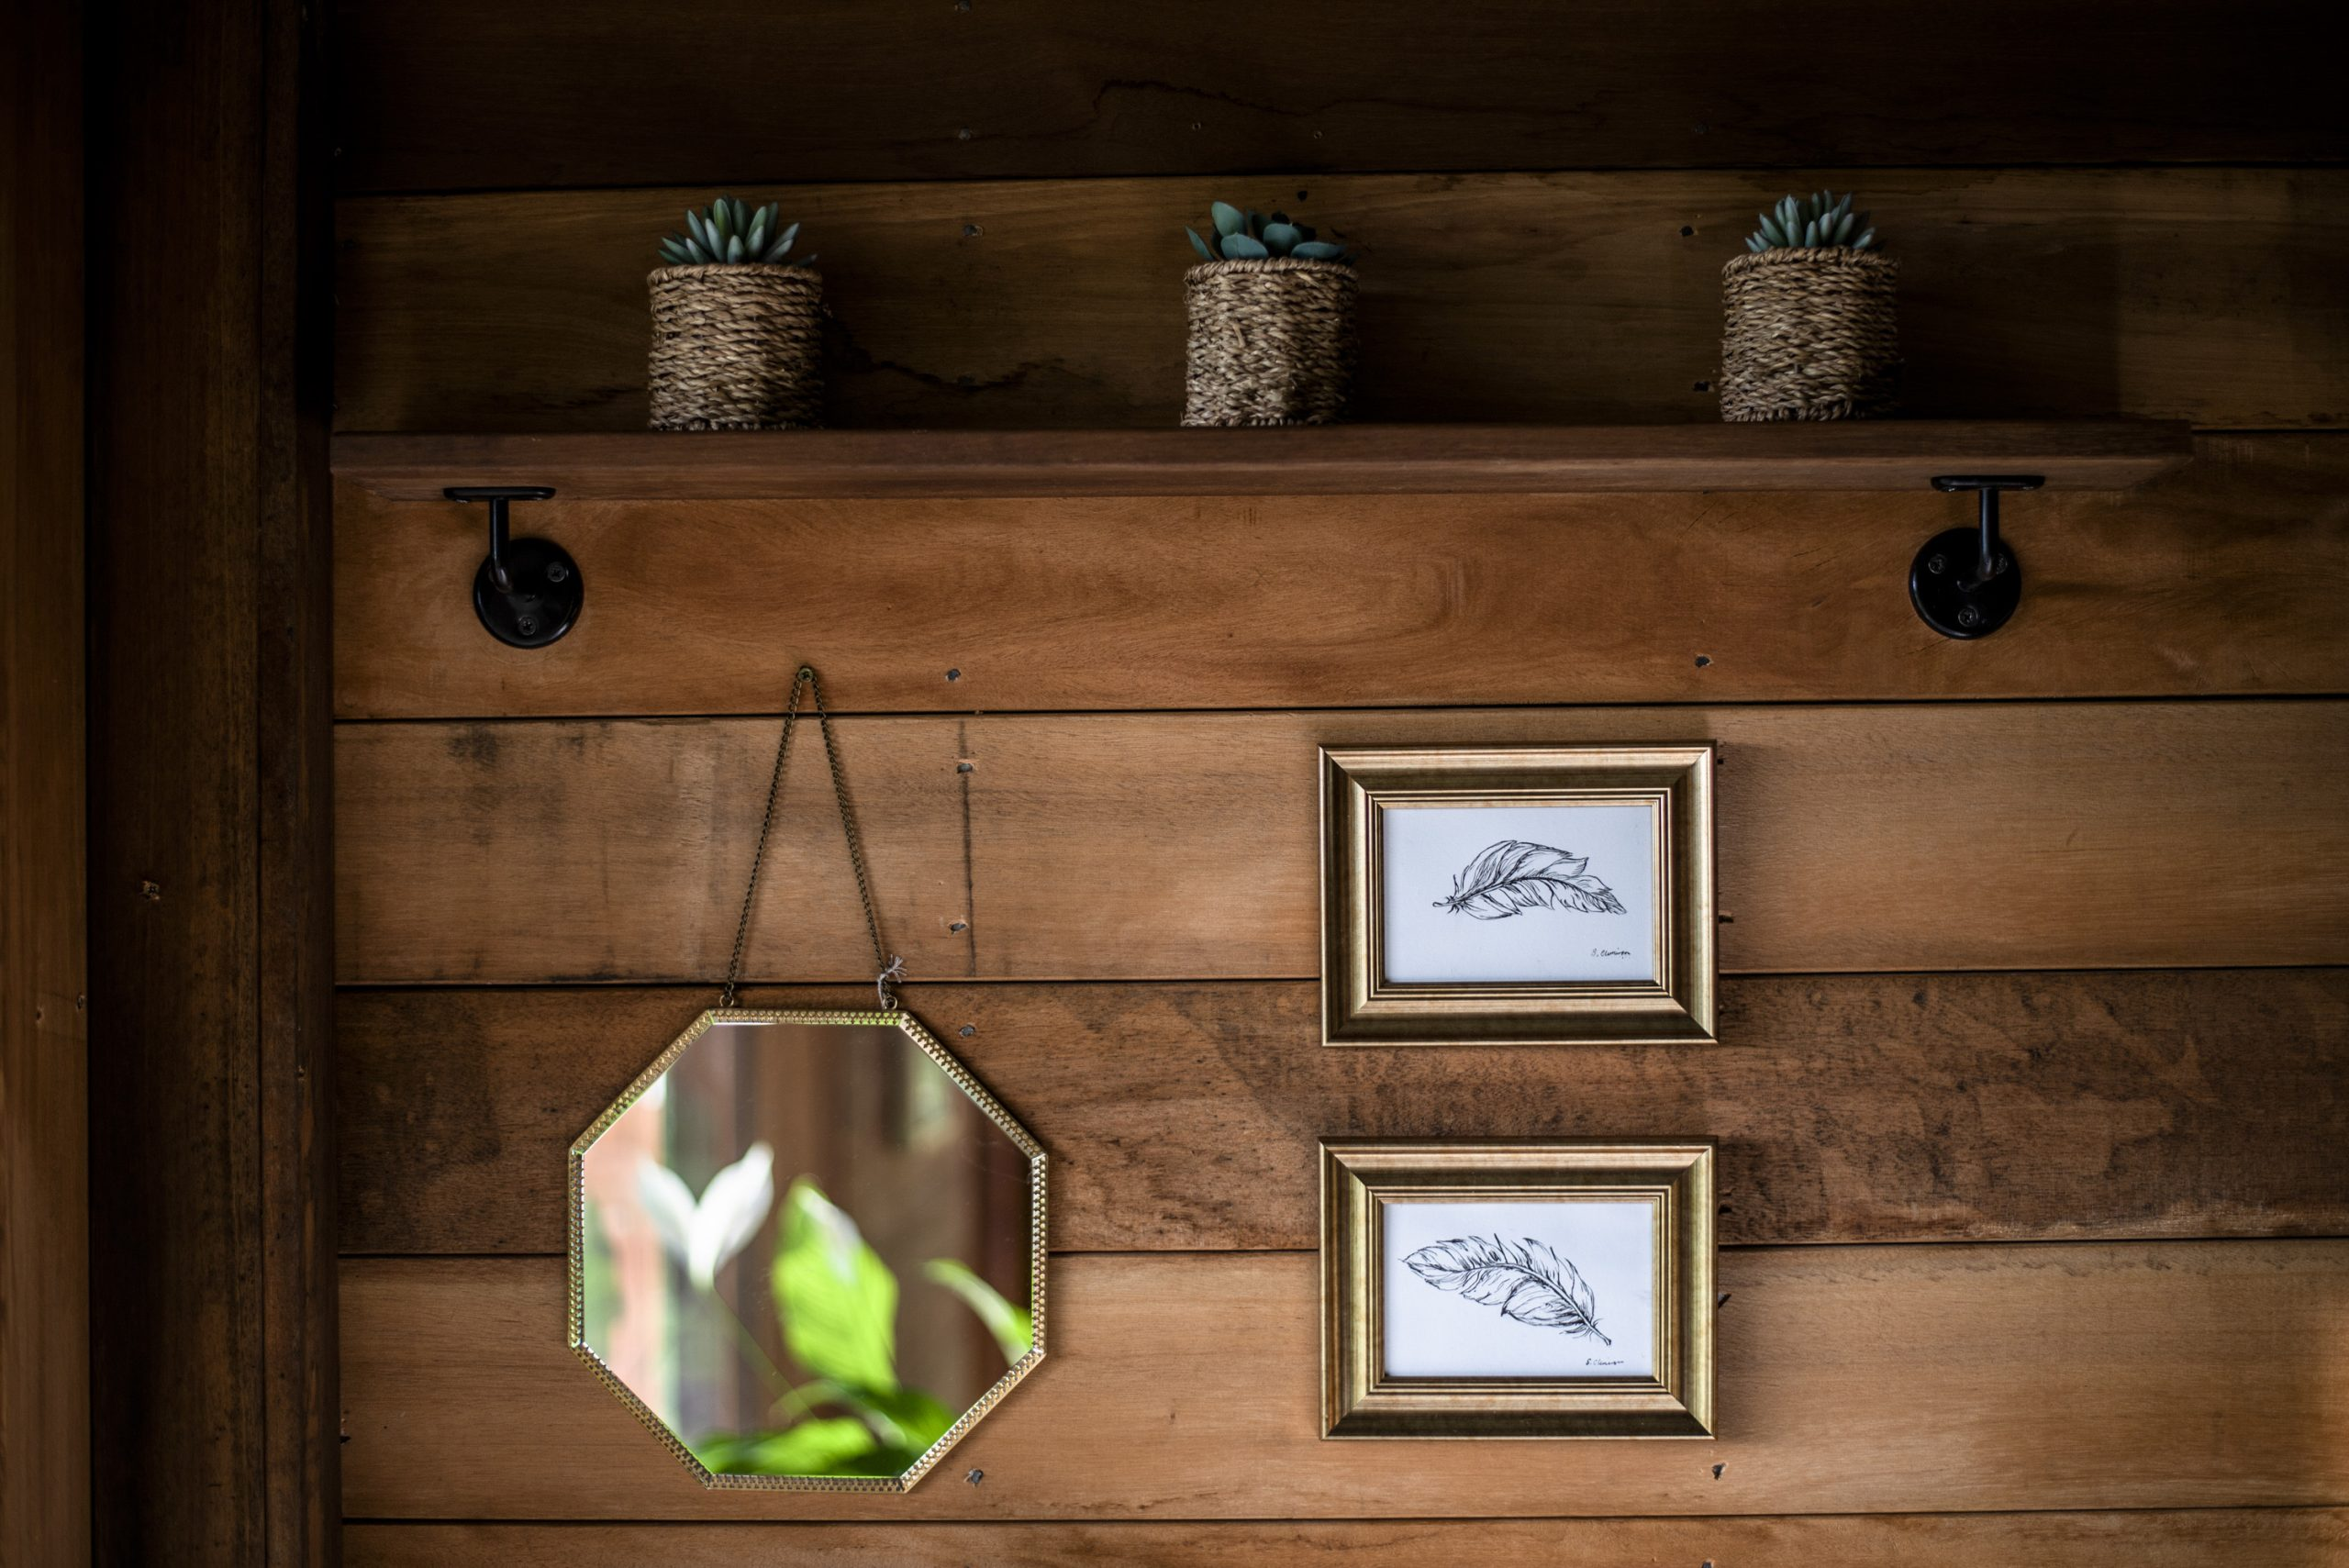 Closeup photo of the cedar cladding, shelf with succulent plants, illustrations and mirror in The Old Oak at Colemans Farm